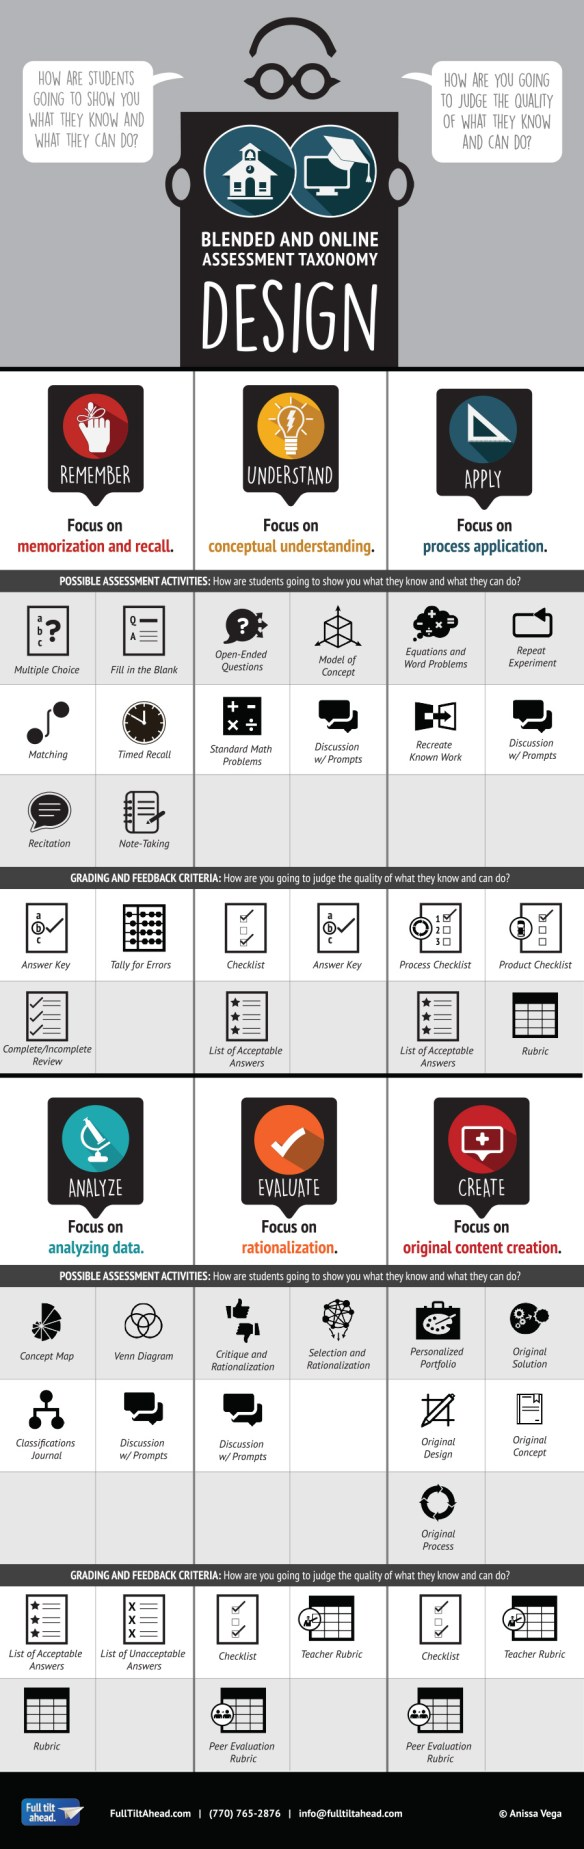 Infographic Designing Blended and Online Assessment Taxonomy